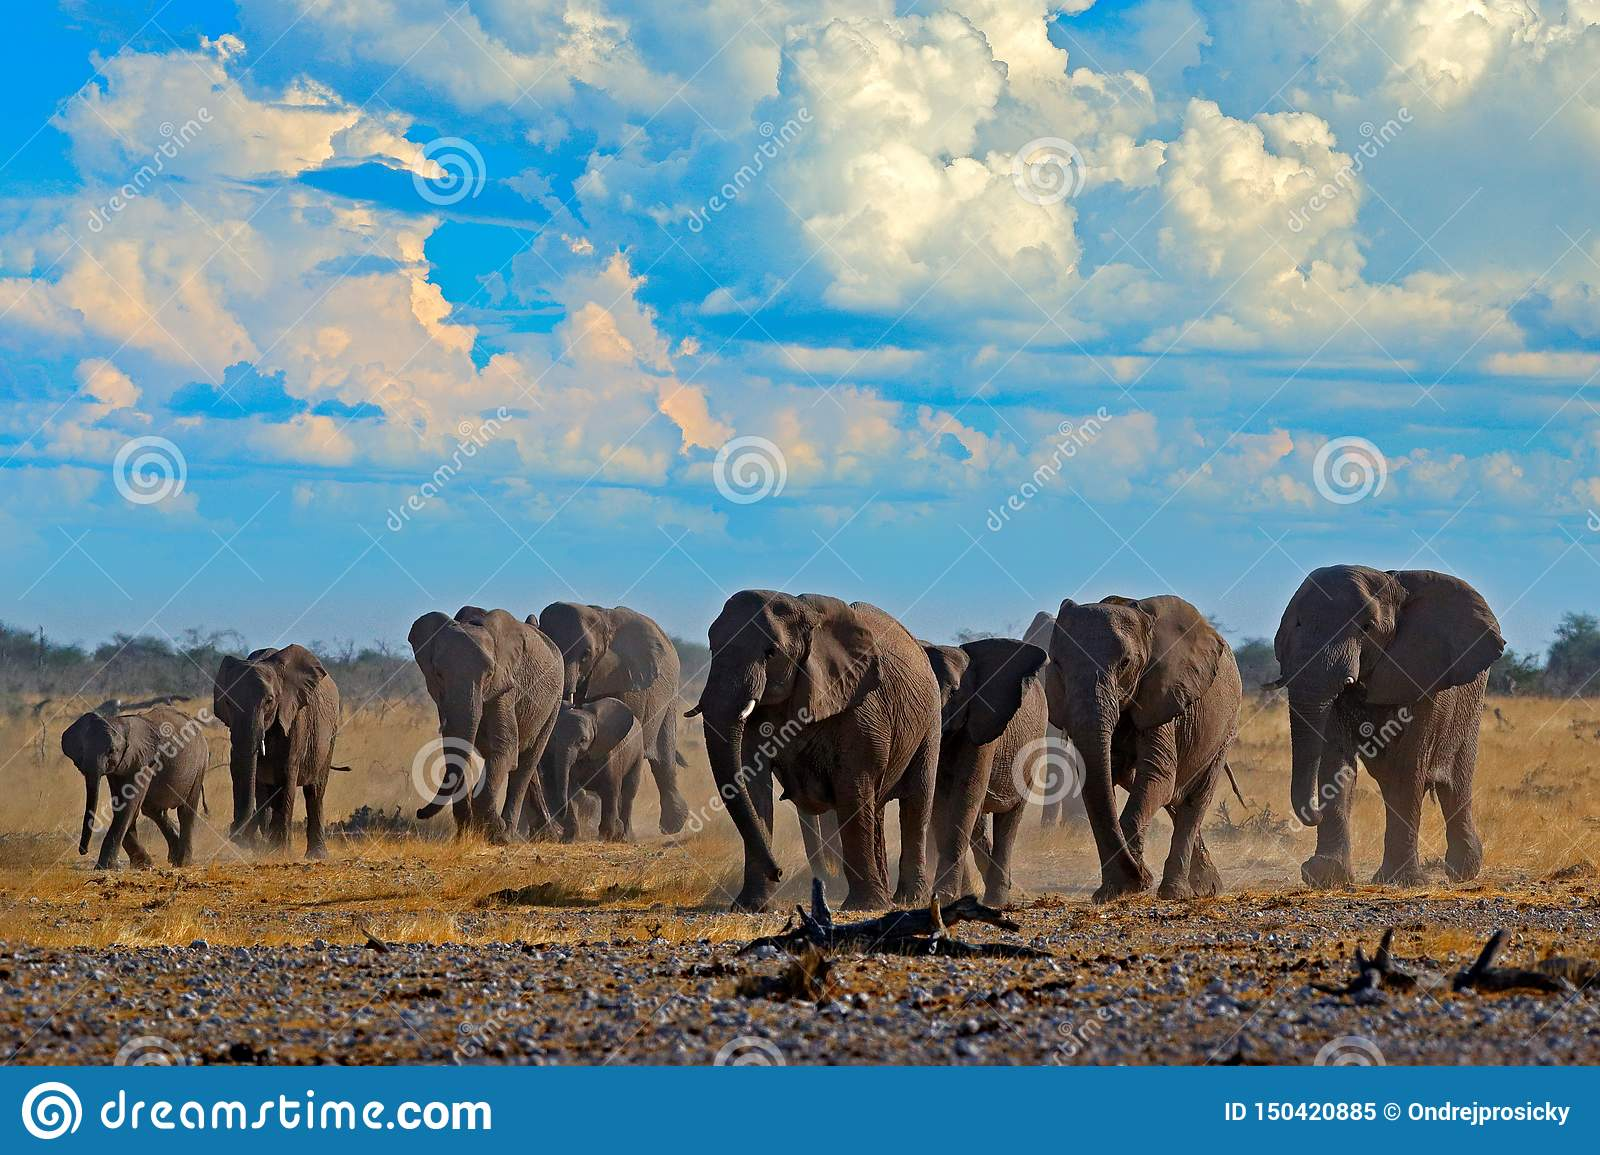 Big African Elephants herd, with blue sky and white clouds, Etosha NP, Namibia in Africa. Elephant in the gravel sand, dry season